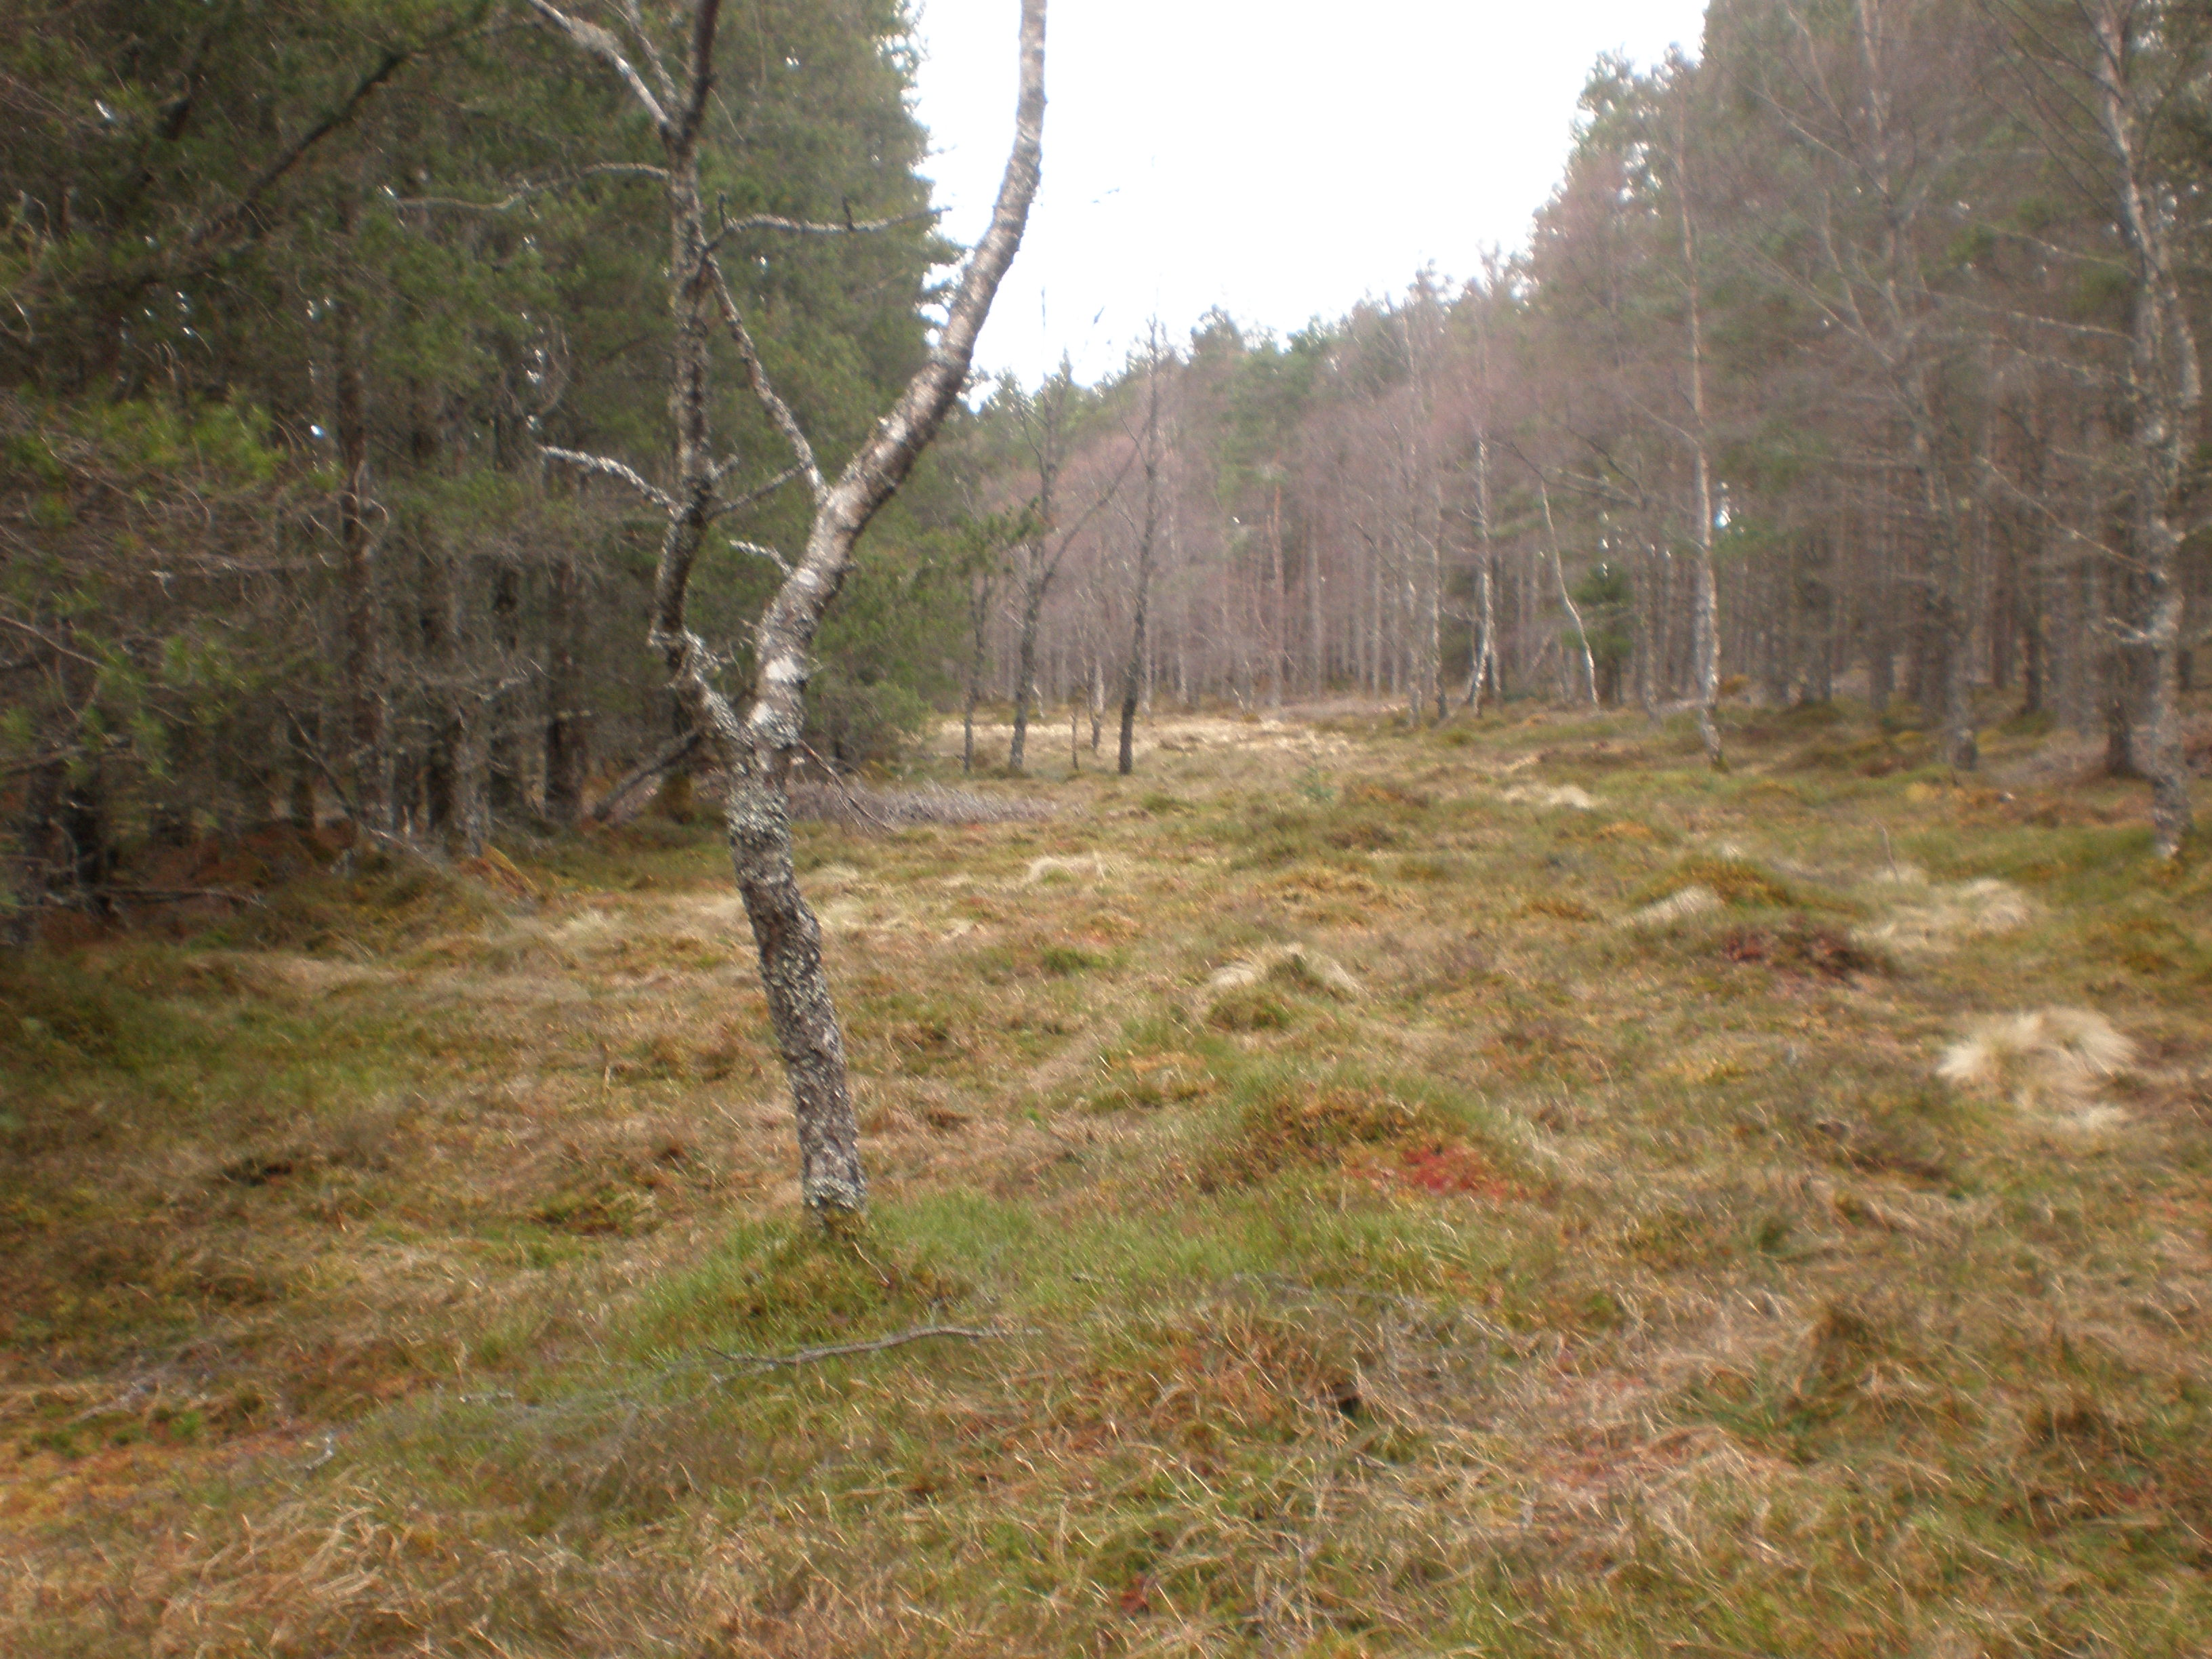 File:Deer track through forest clearing - geograph.org.uk - 1779430.jpg -  Wikimedia Commons